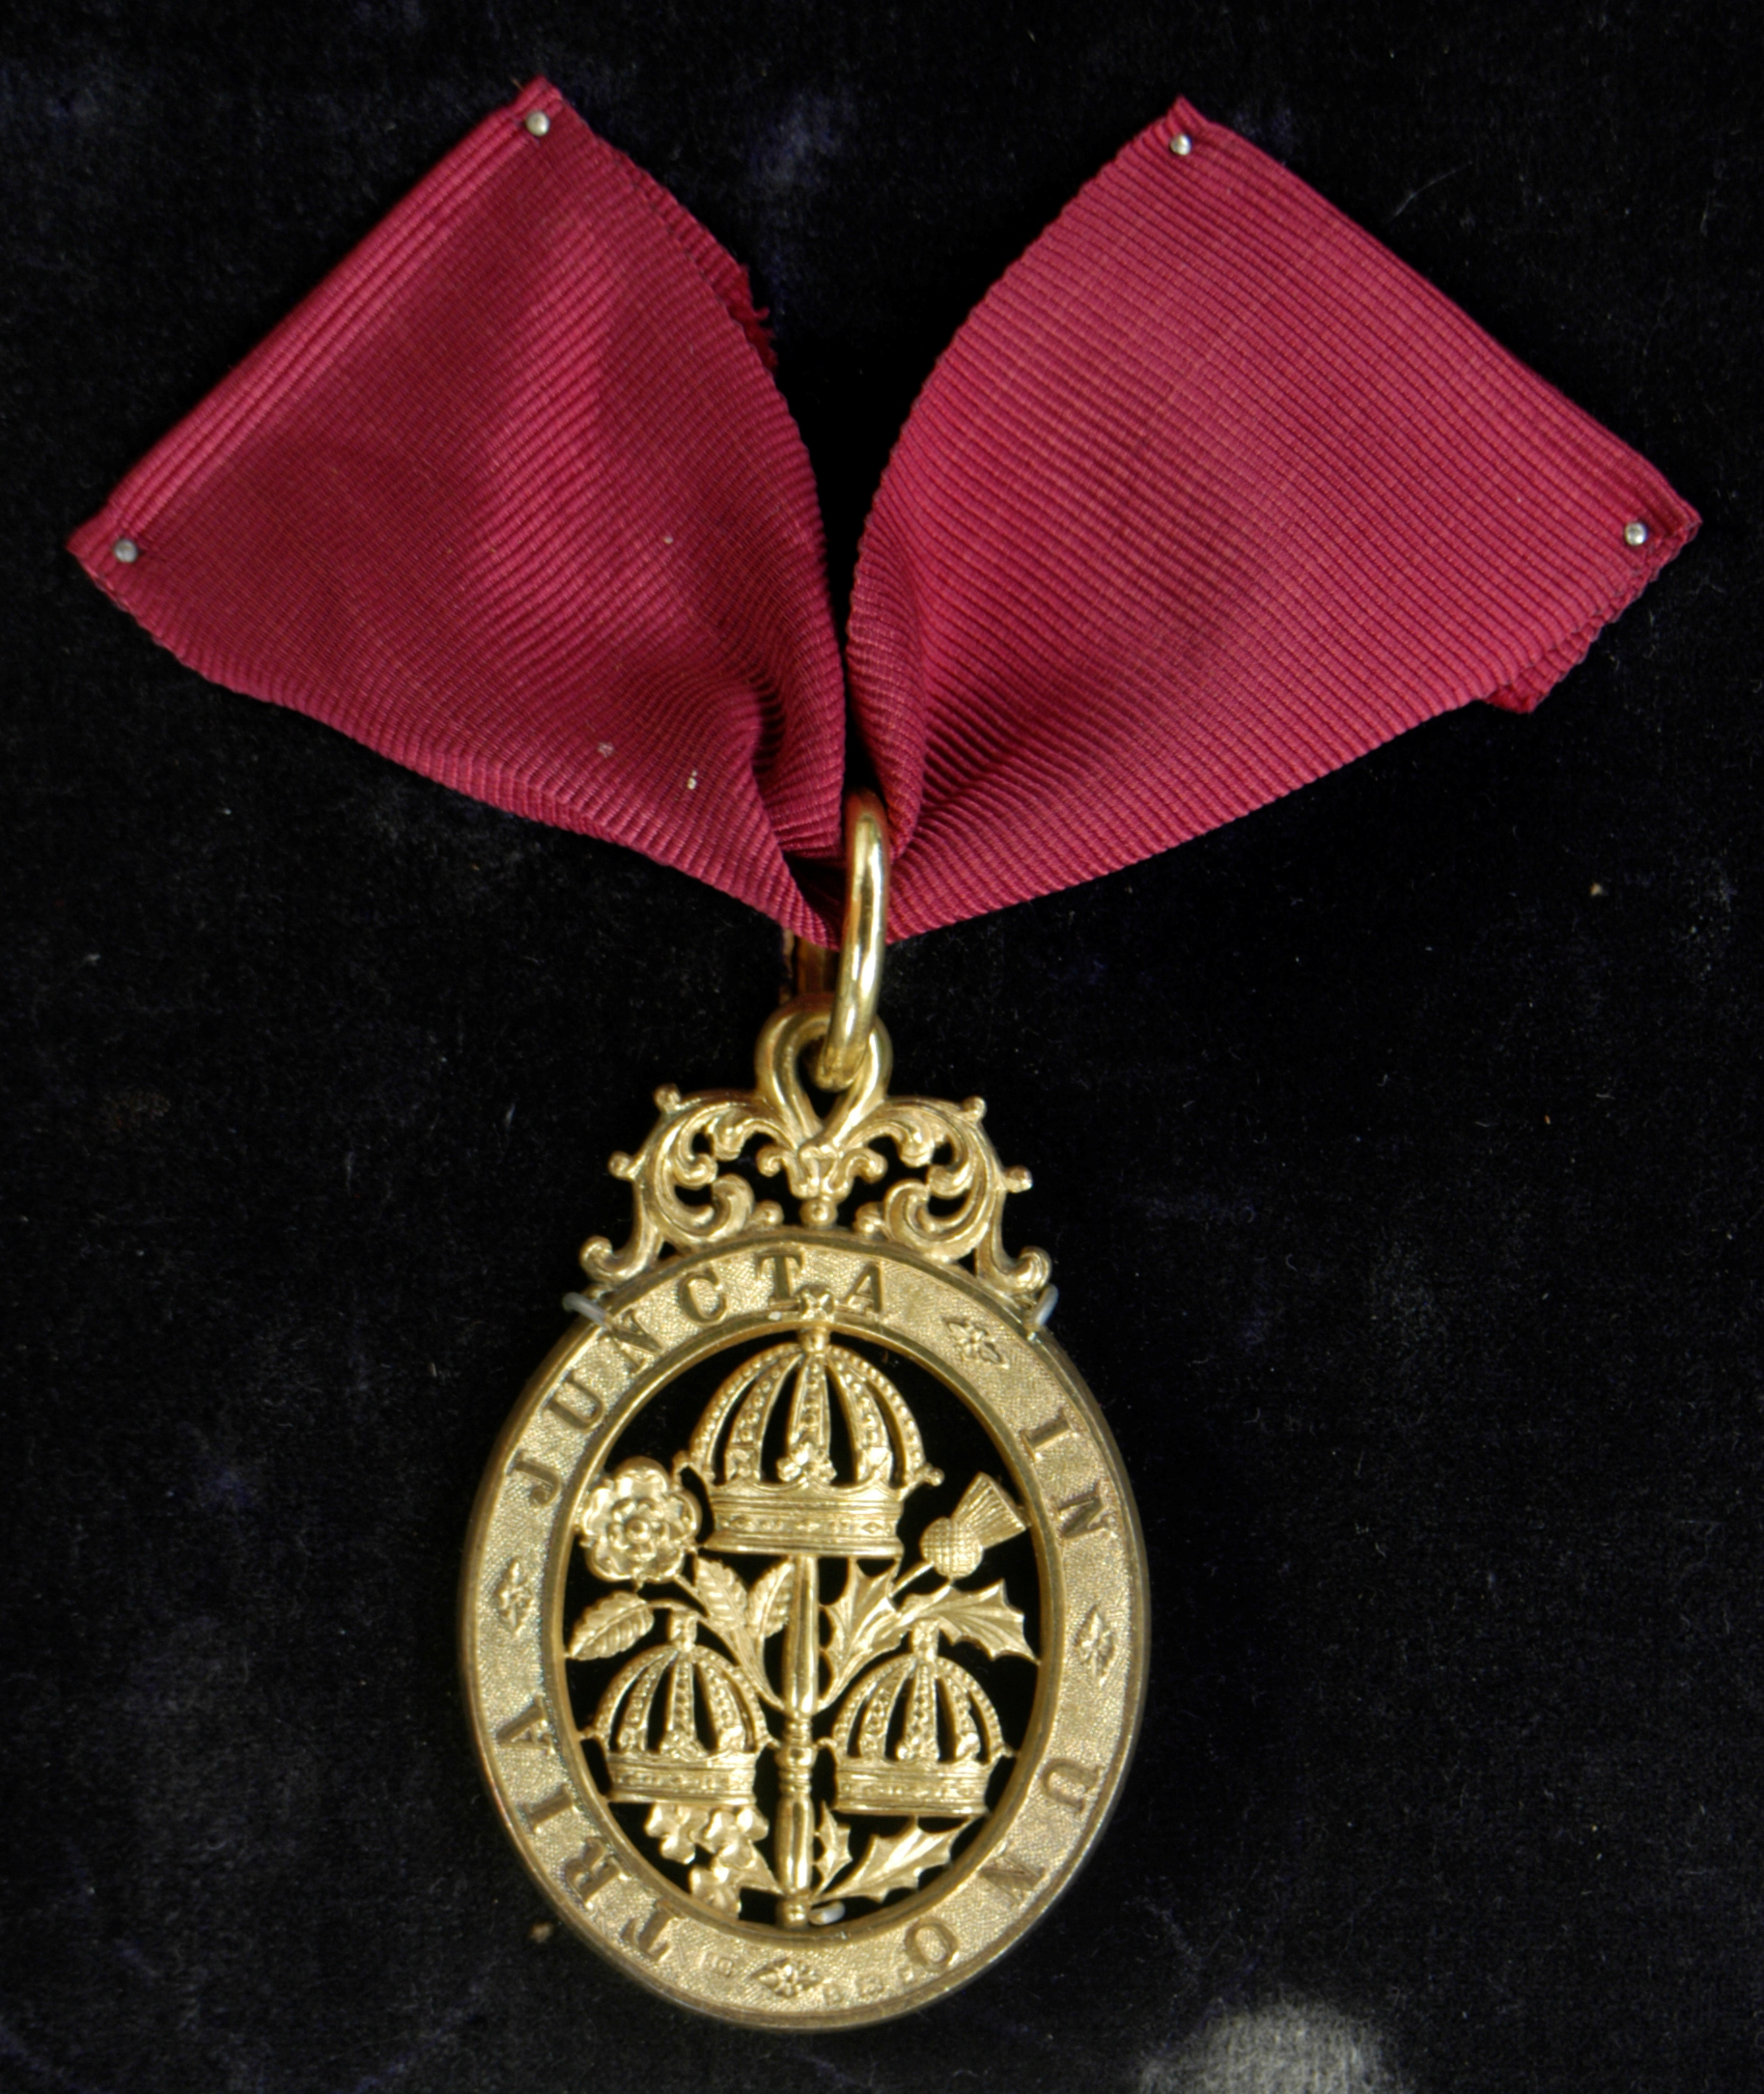 File:Knight Commander of the Bath neck badge, awarded to Cecil Fane